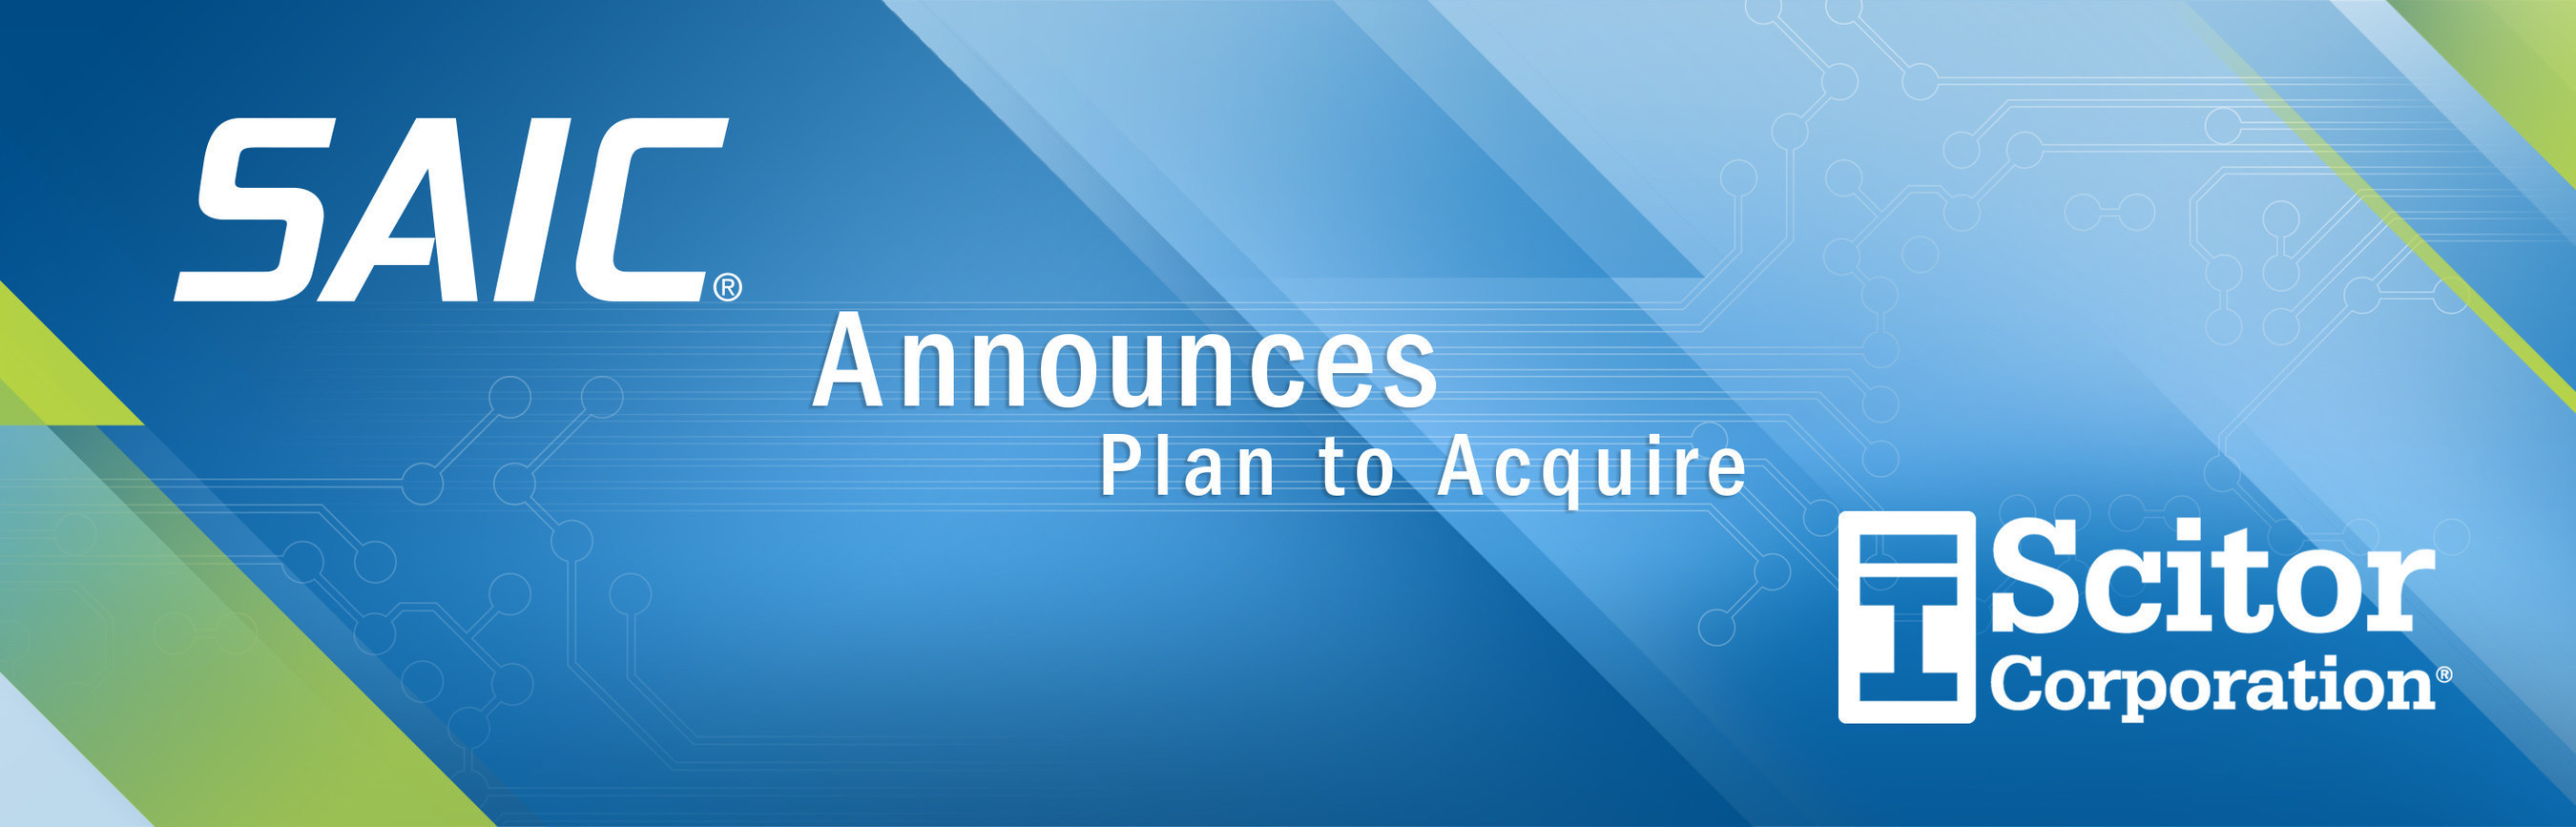 SAIC has entered into a definitive agreement to acquire Scitor Corp.